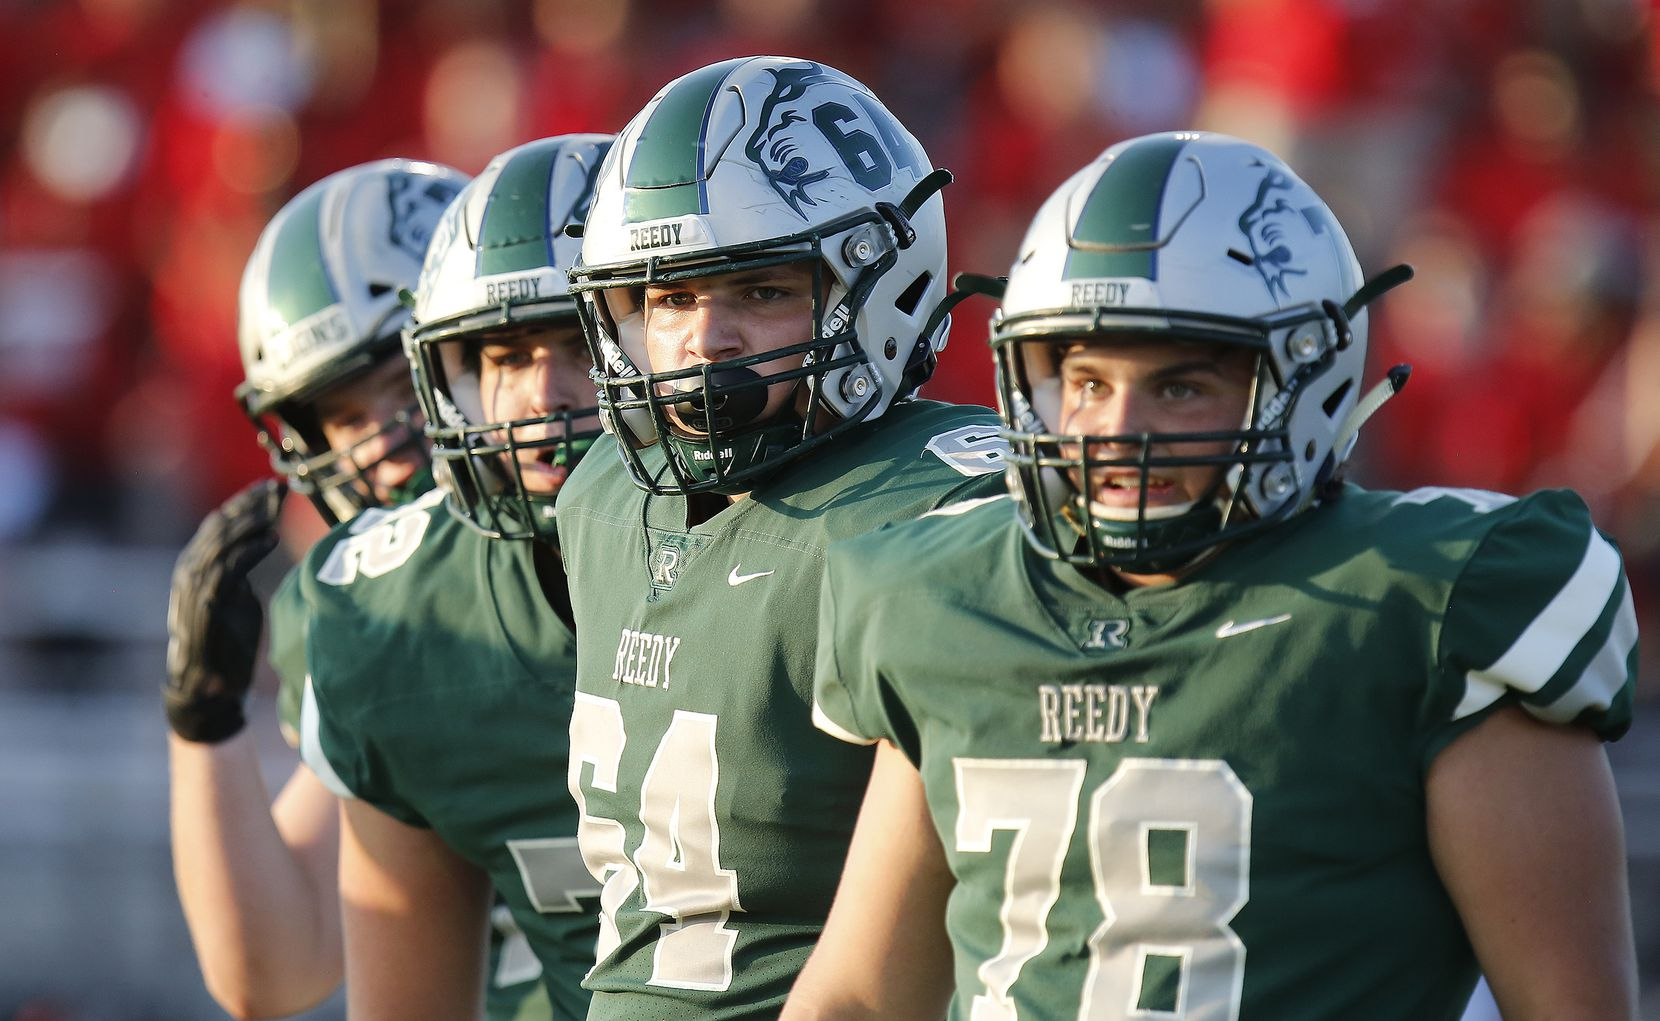 The Reedy High School offensive line looks to the sideline for signals from the coaches during the first half as Reedy High School hosted Frisco Liberty High School at David Kuykendall Stadium in Frisco on Wednesday night, August 26, 2021. (Stewart F. House/Special Contributor)